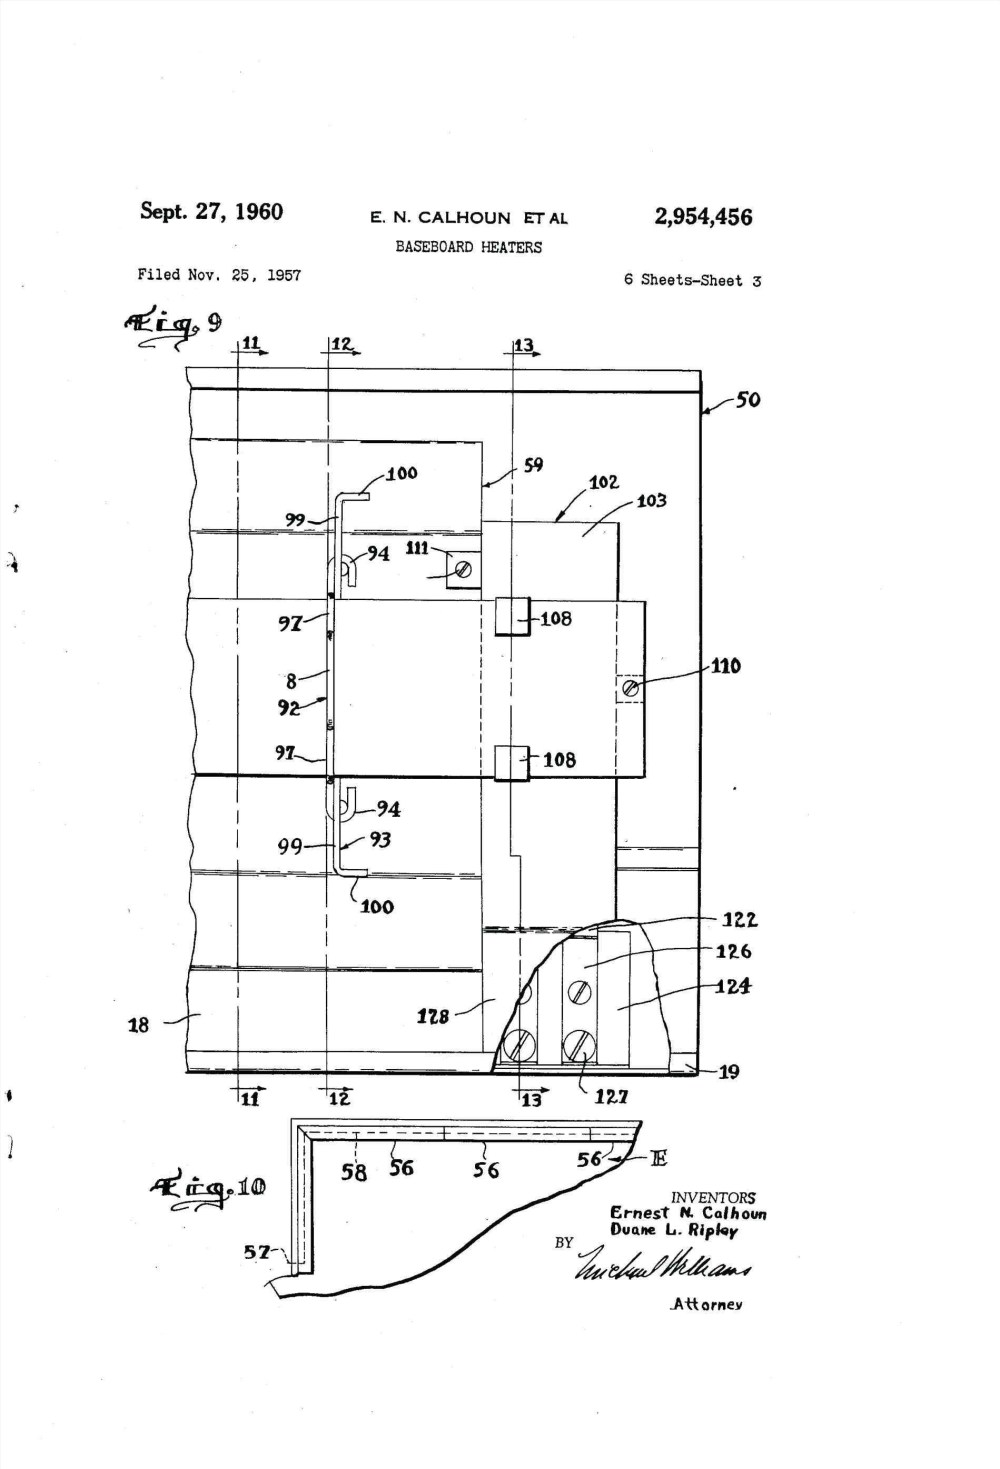 medium resolution of wiring diagram for electric baseboard heater best stelpro electric furnace wiring diagram valid exelent tpi wiring fahrenheat